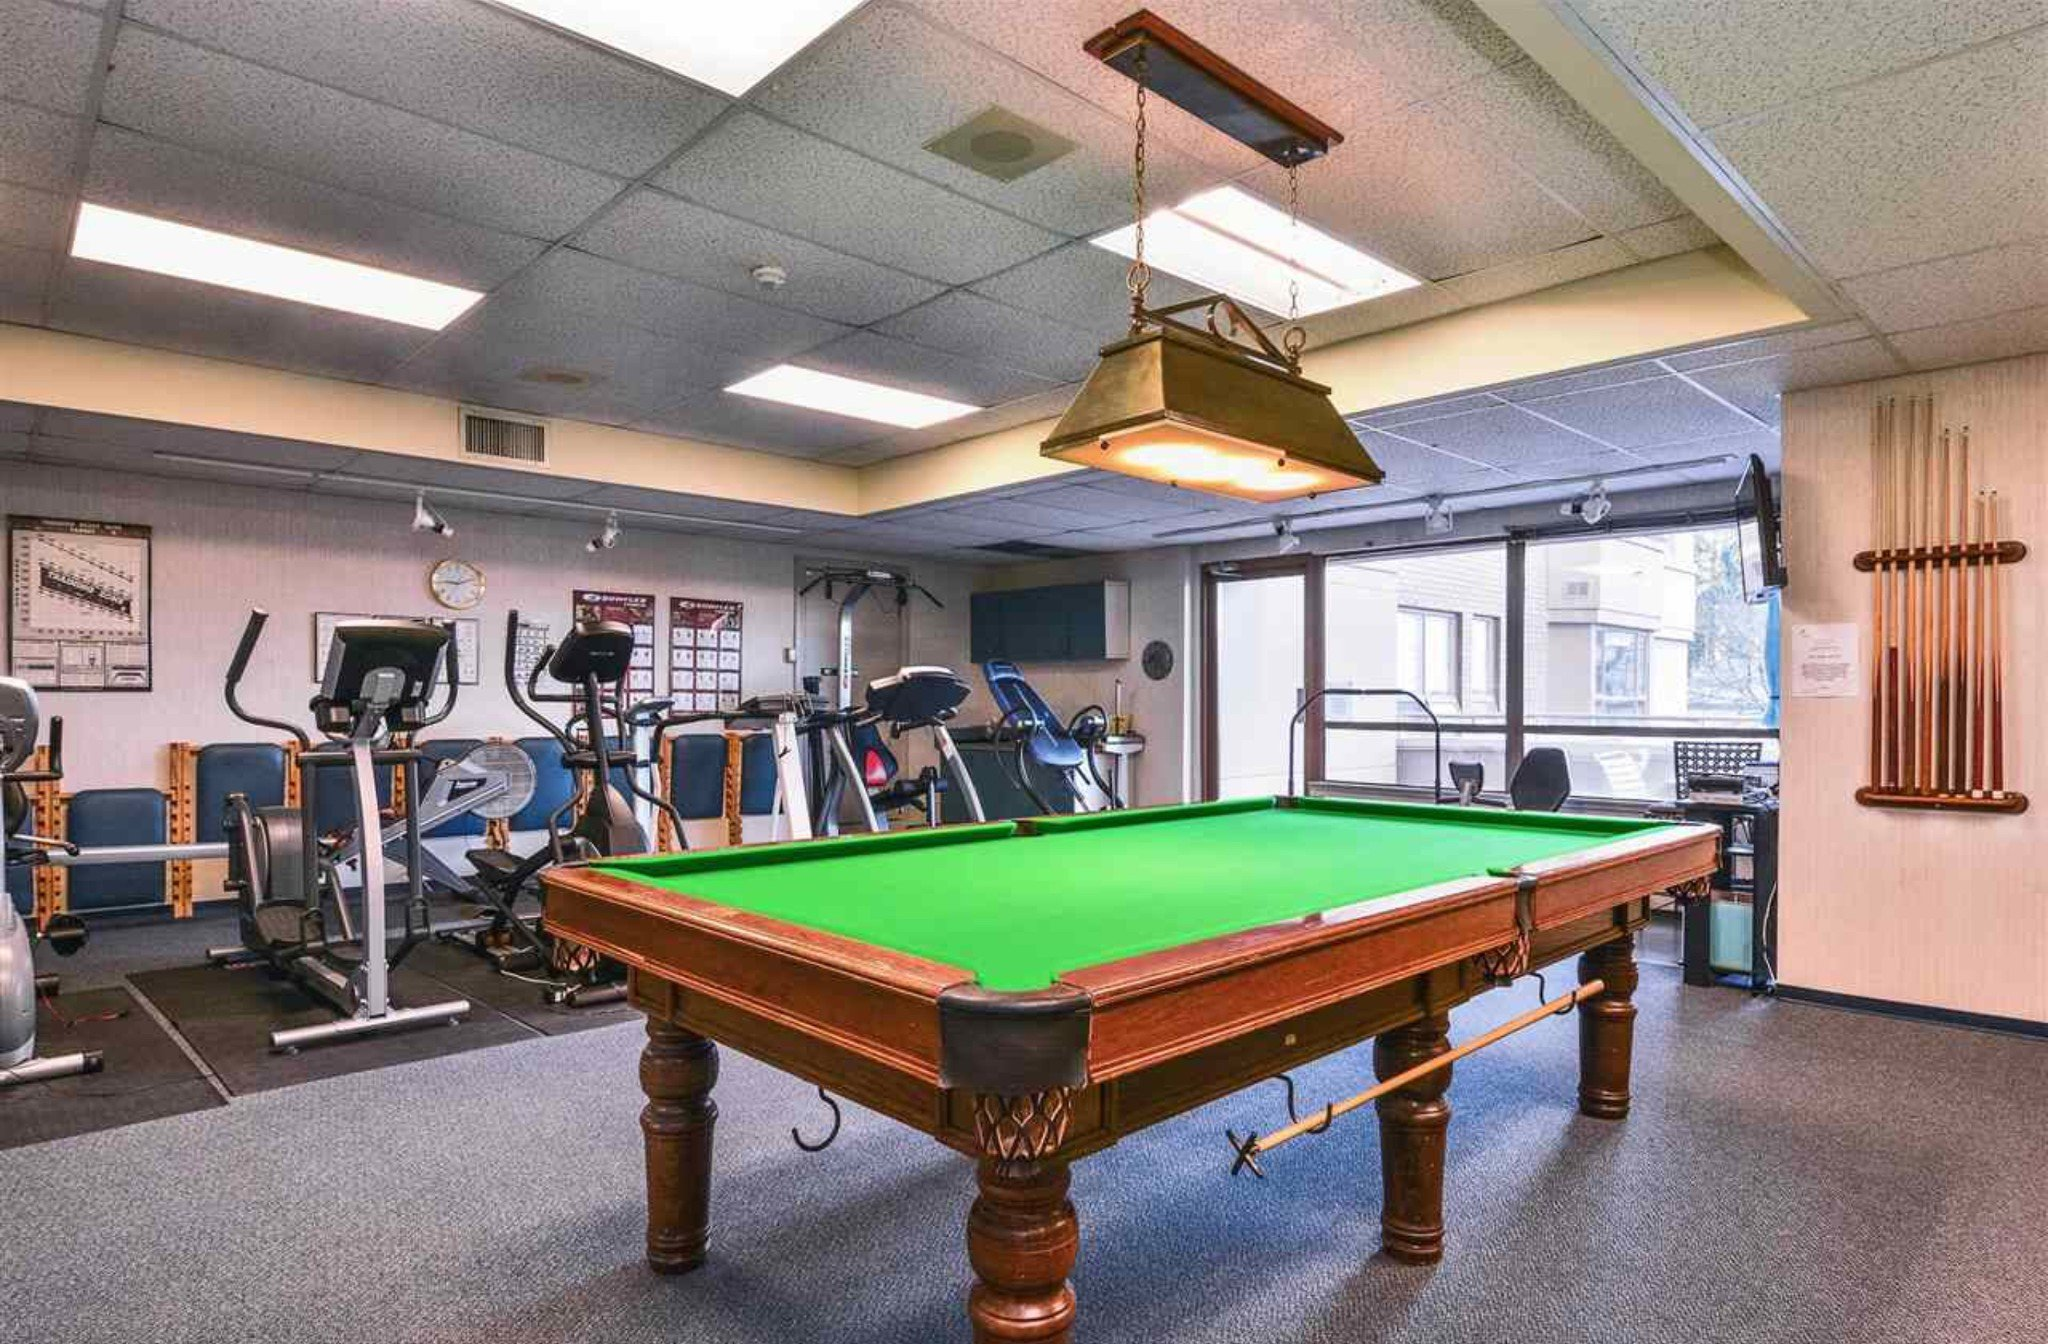 Photo 14: Photos: 405, 15111 Russell Avenue: White Rock Condo for sale (South Surrey White Rock)  : MLS®# R2133728